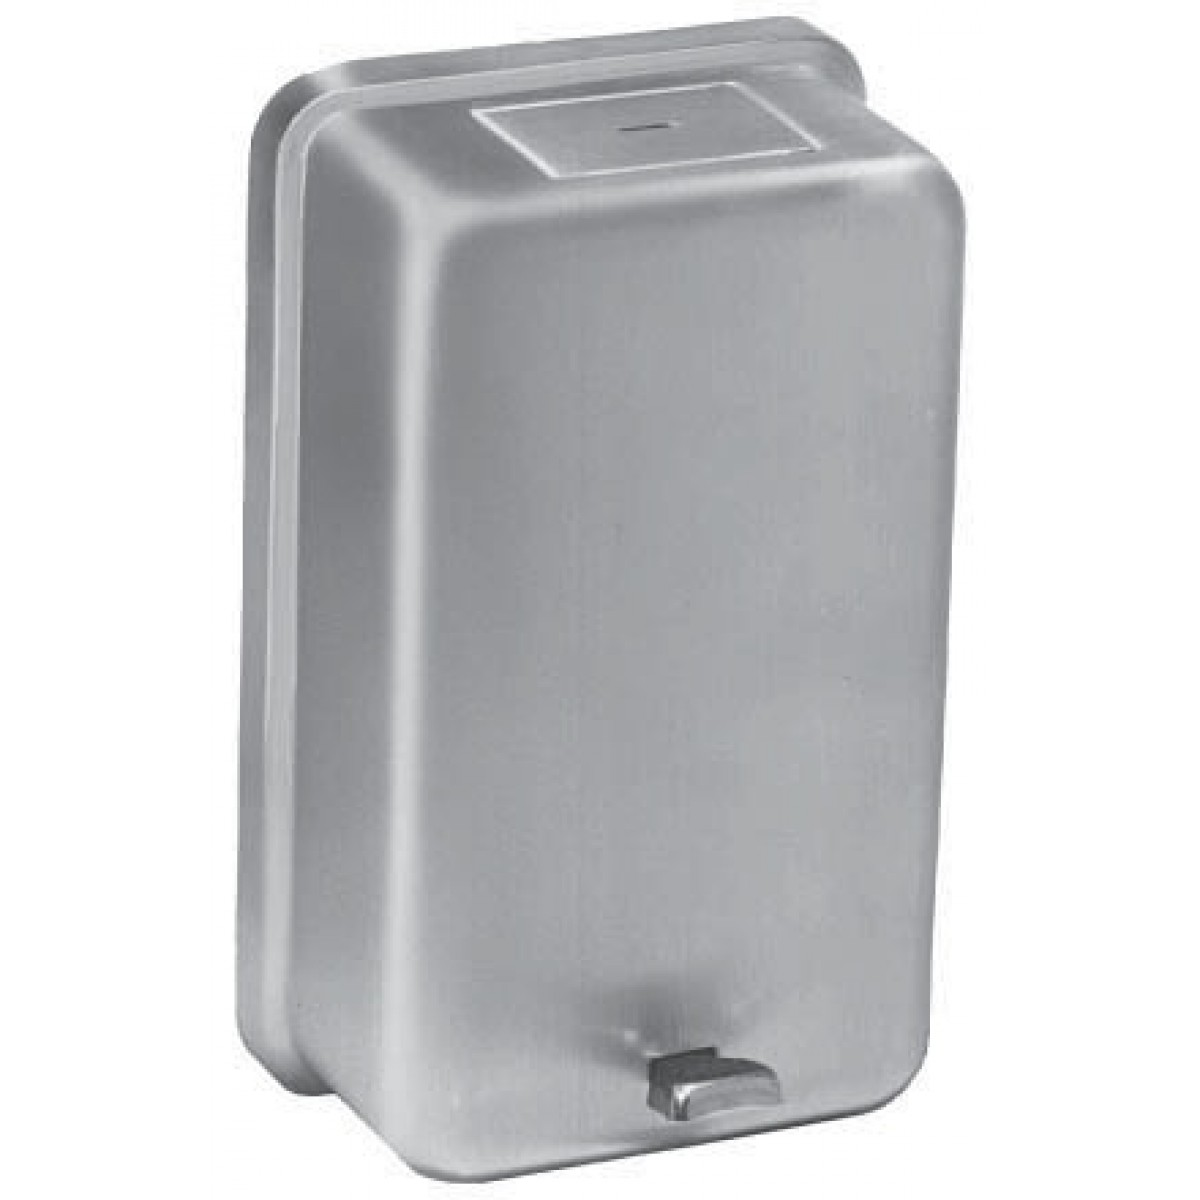 Bradley 6583 Powdered Soap Dispenser (32 oz. cap.)